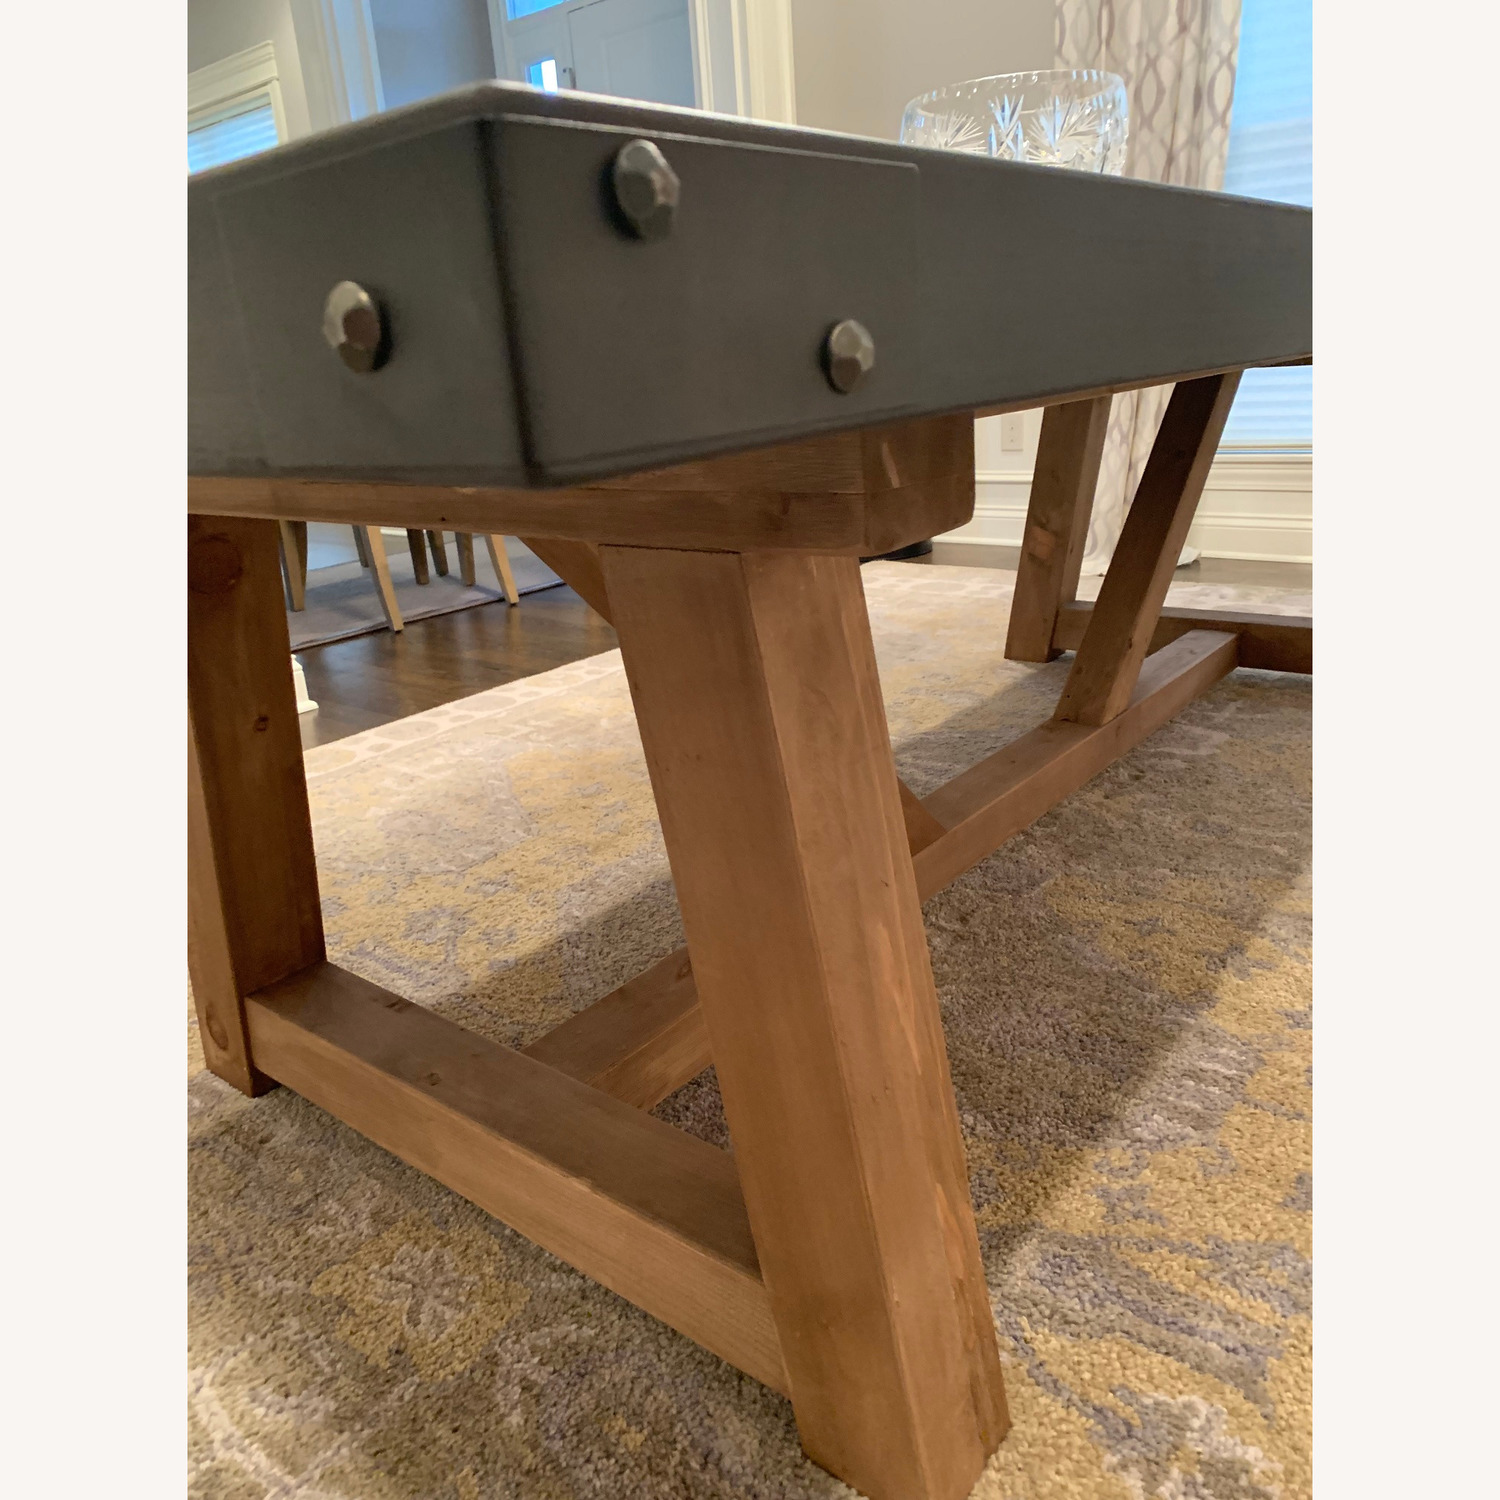 Restoration Hardware Salvaged Wood and Concrete Table - image-4